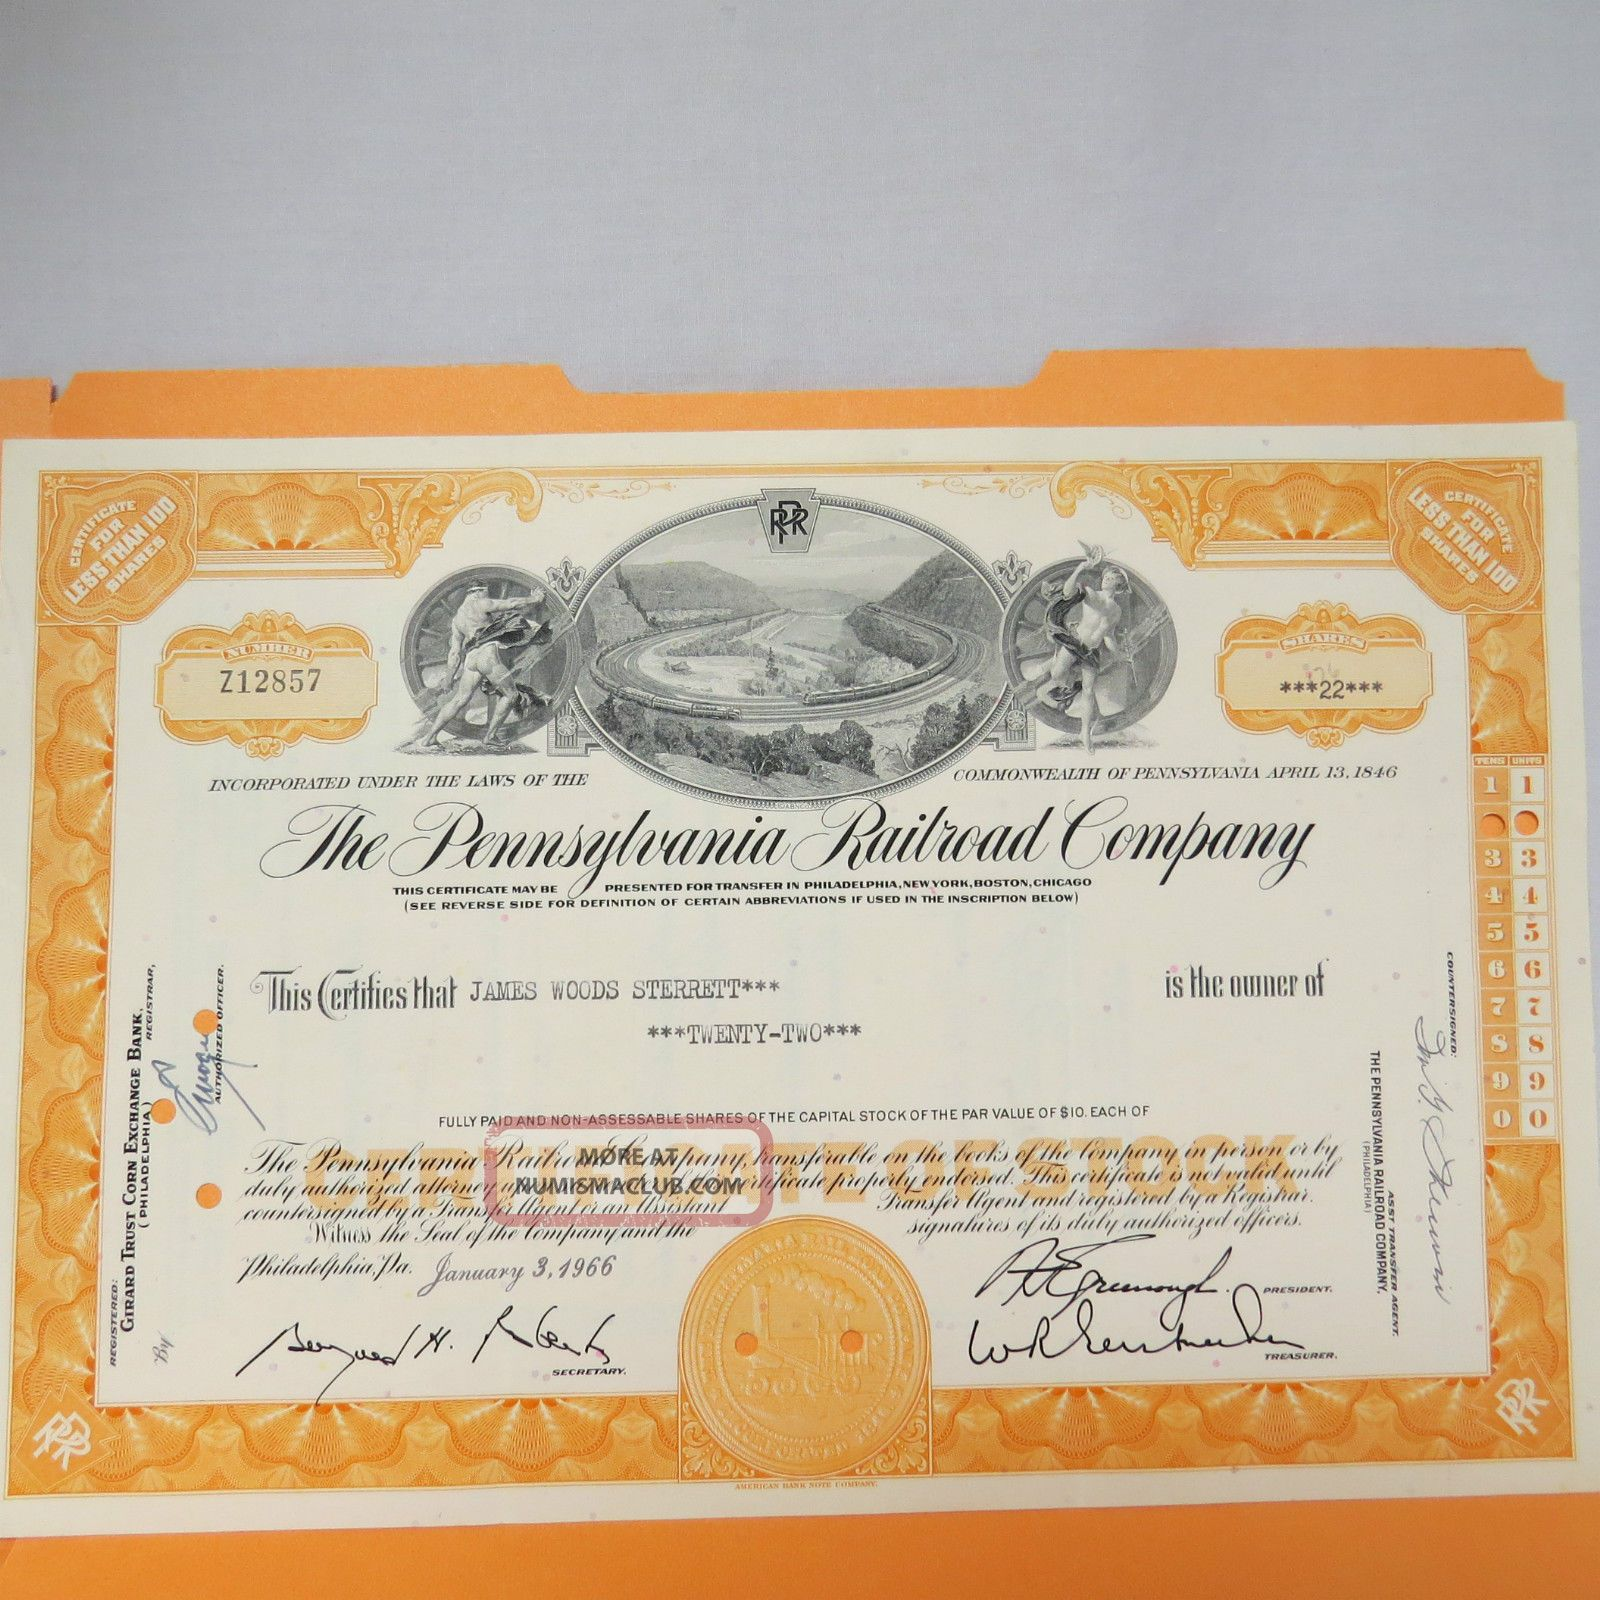 1966 Pennsylvania Railroad Company Stock Certificate 22 Shares James Woods Sterr Transportation photo